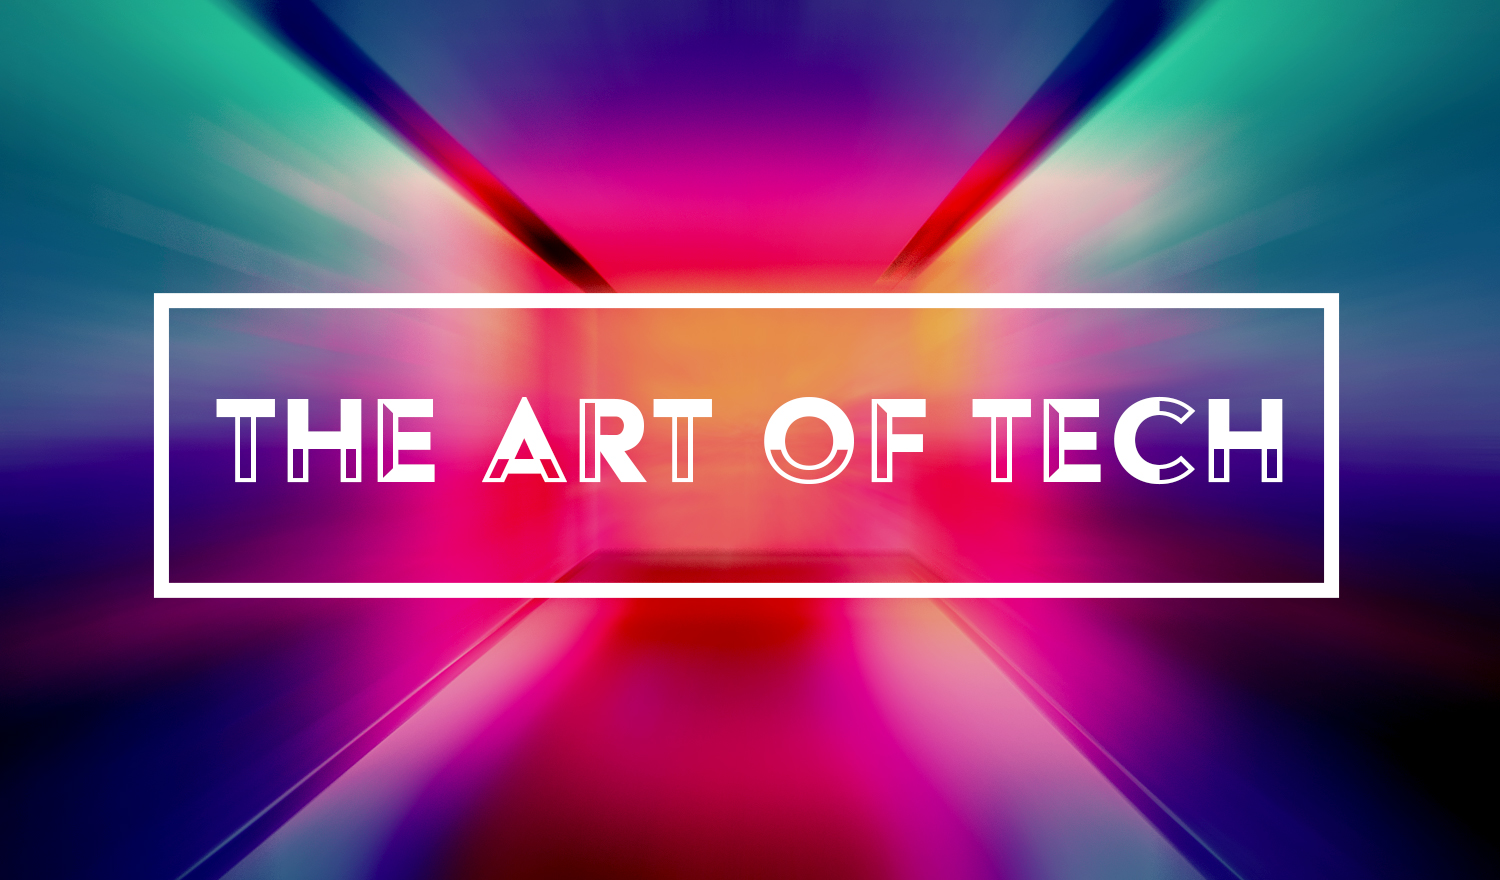 The Art of Tech